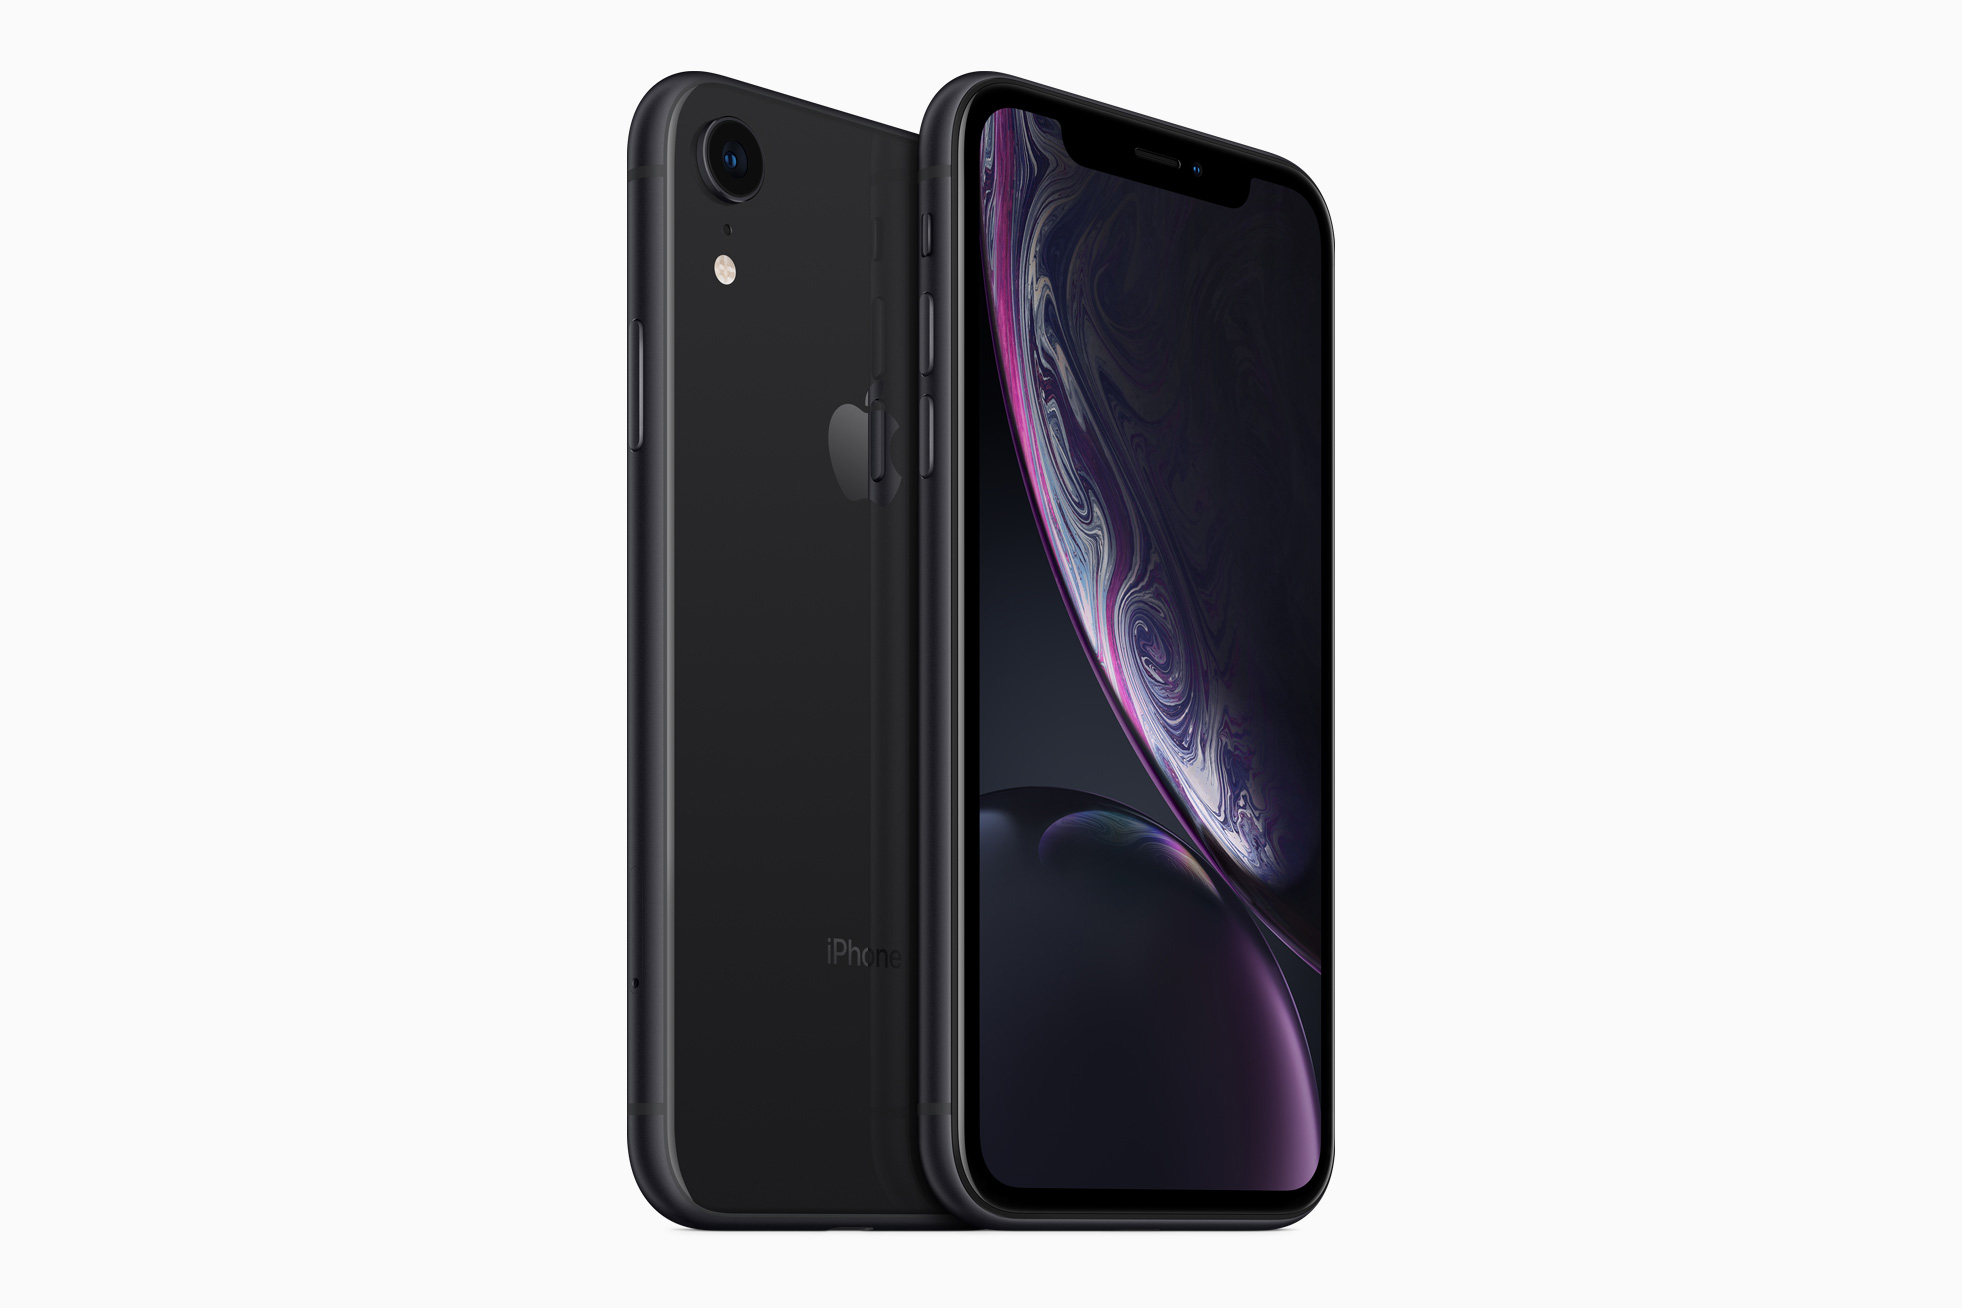 apple announces the 2018 iphones iphone xs iphone xs max. Black Bedroom Furniture Sets. Home Design Ideas